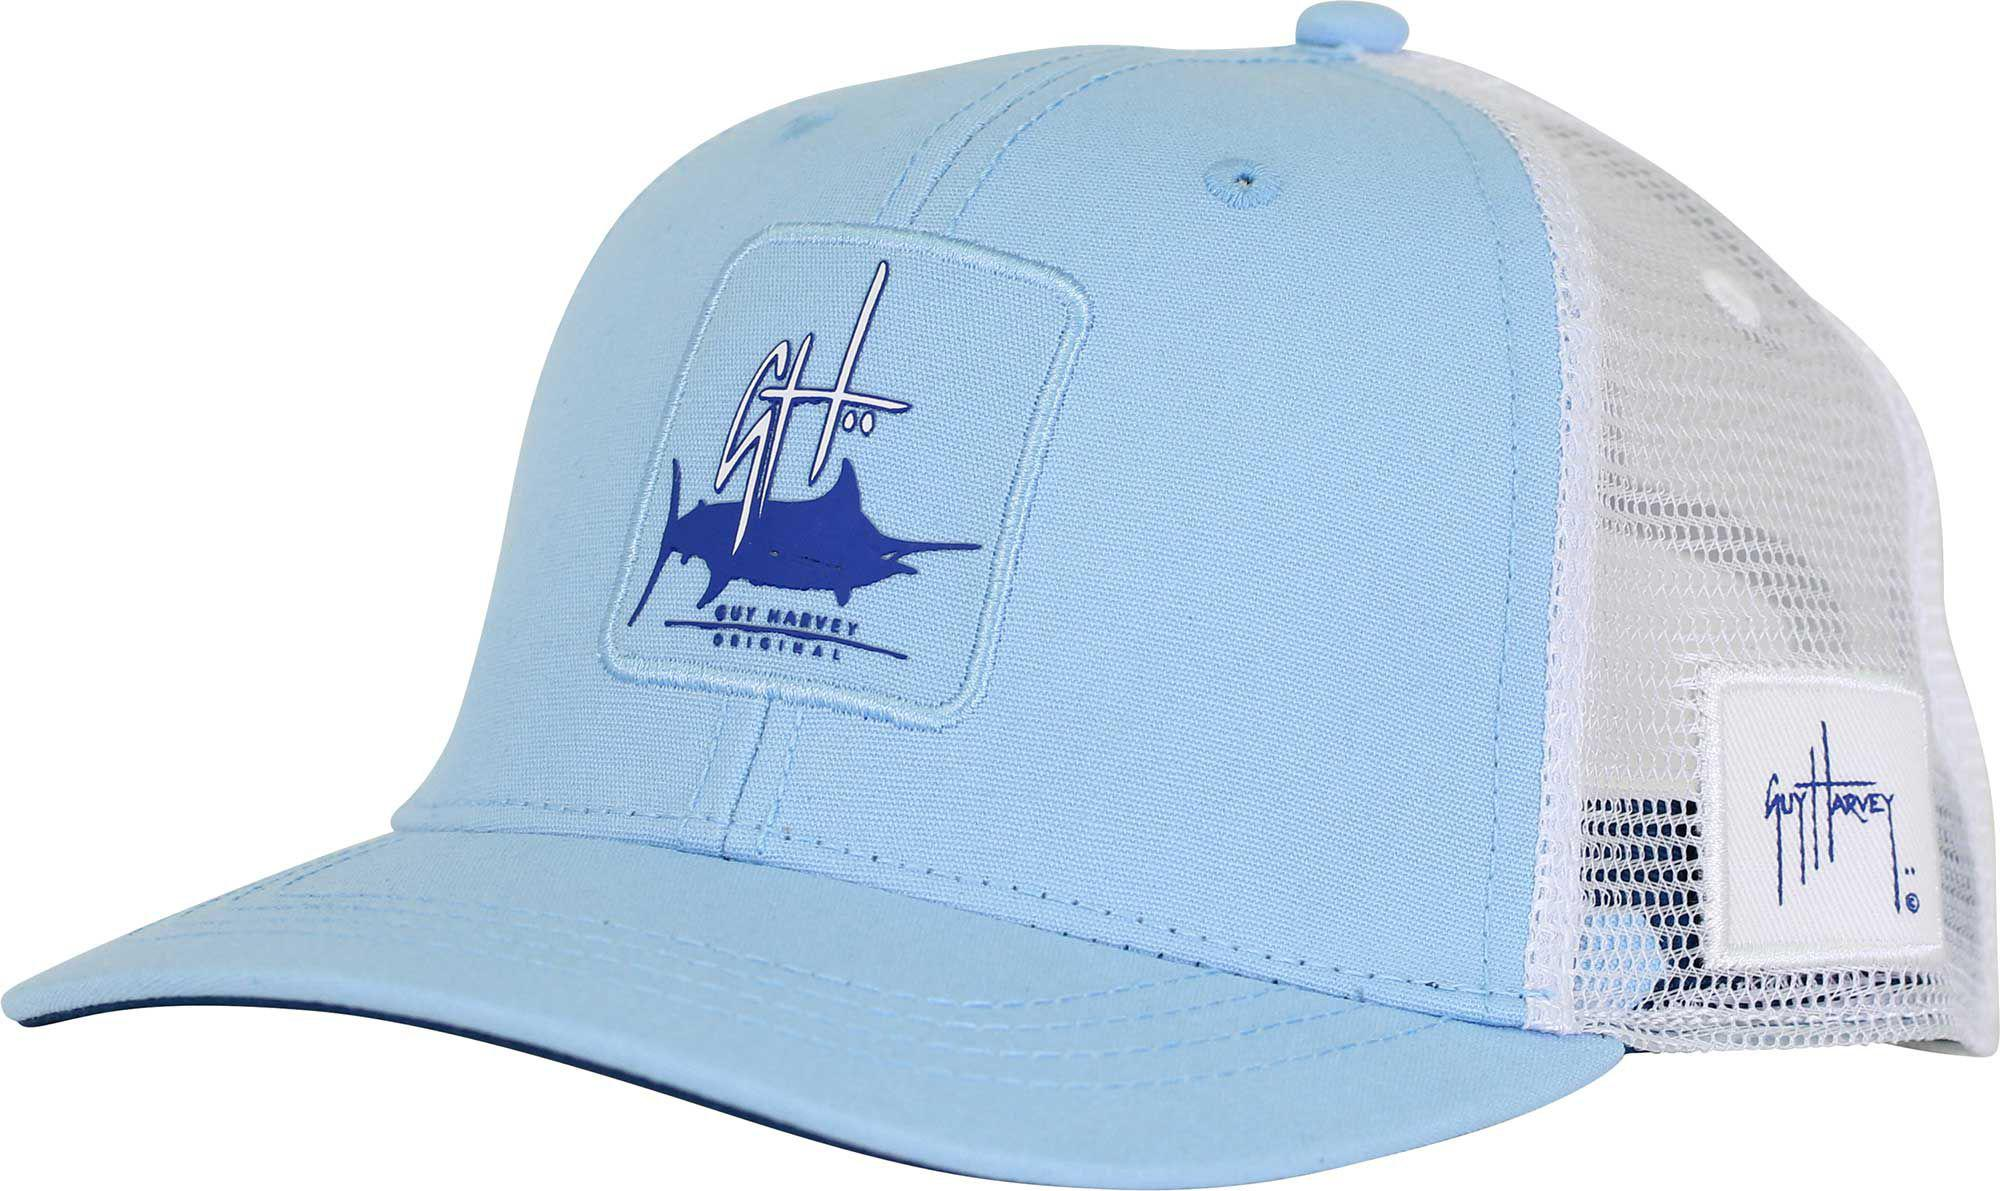 9ccd36e9d13e8 Guy Harvey Sputnik Trucker Hat in Blue for Men - Lyst